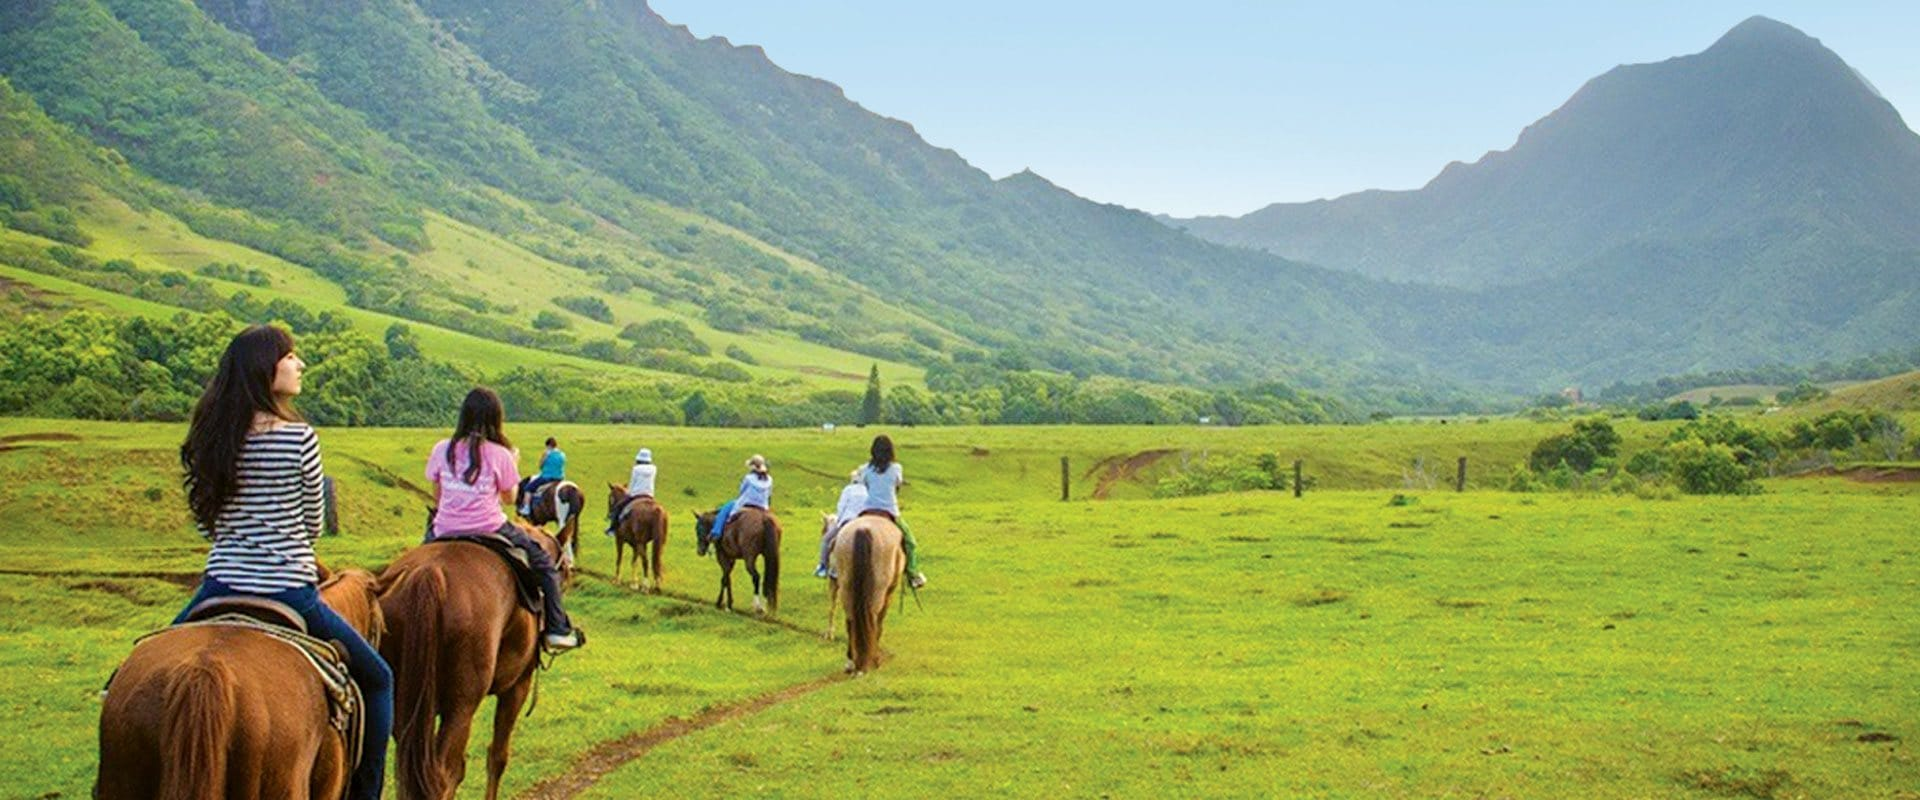 Horseback along the spectacular Koolau Mountain Range